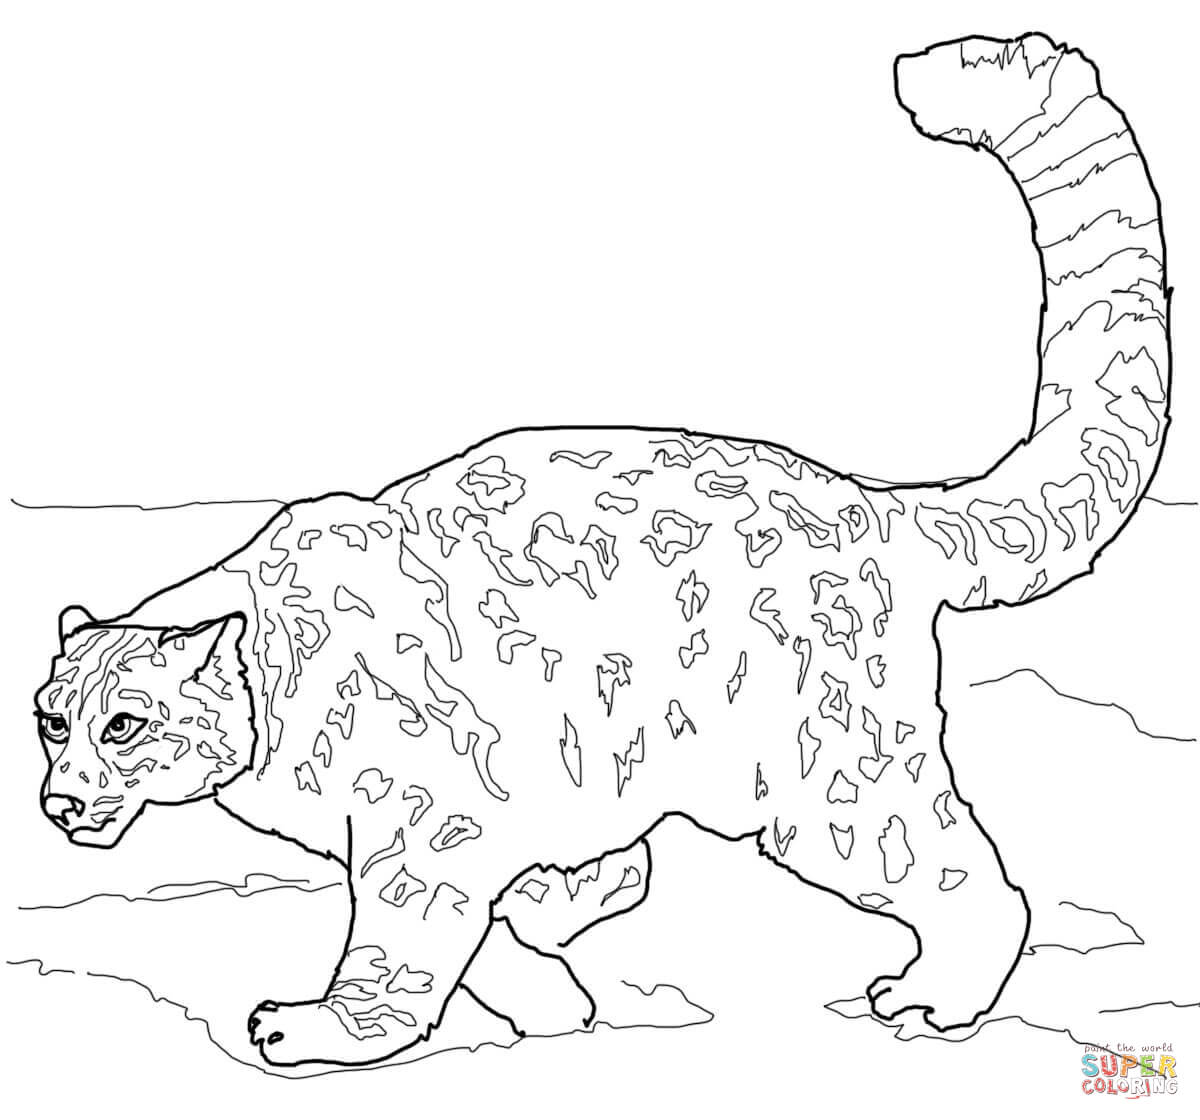 Drawn snow leopard tree drawing Pages Leopard Leopards pages Coloring